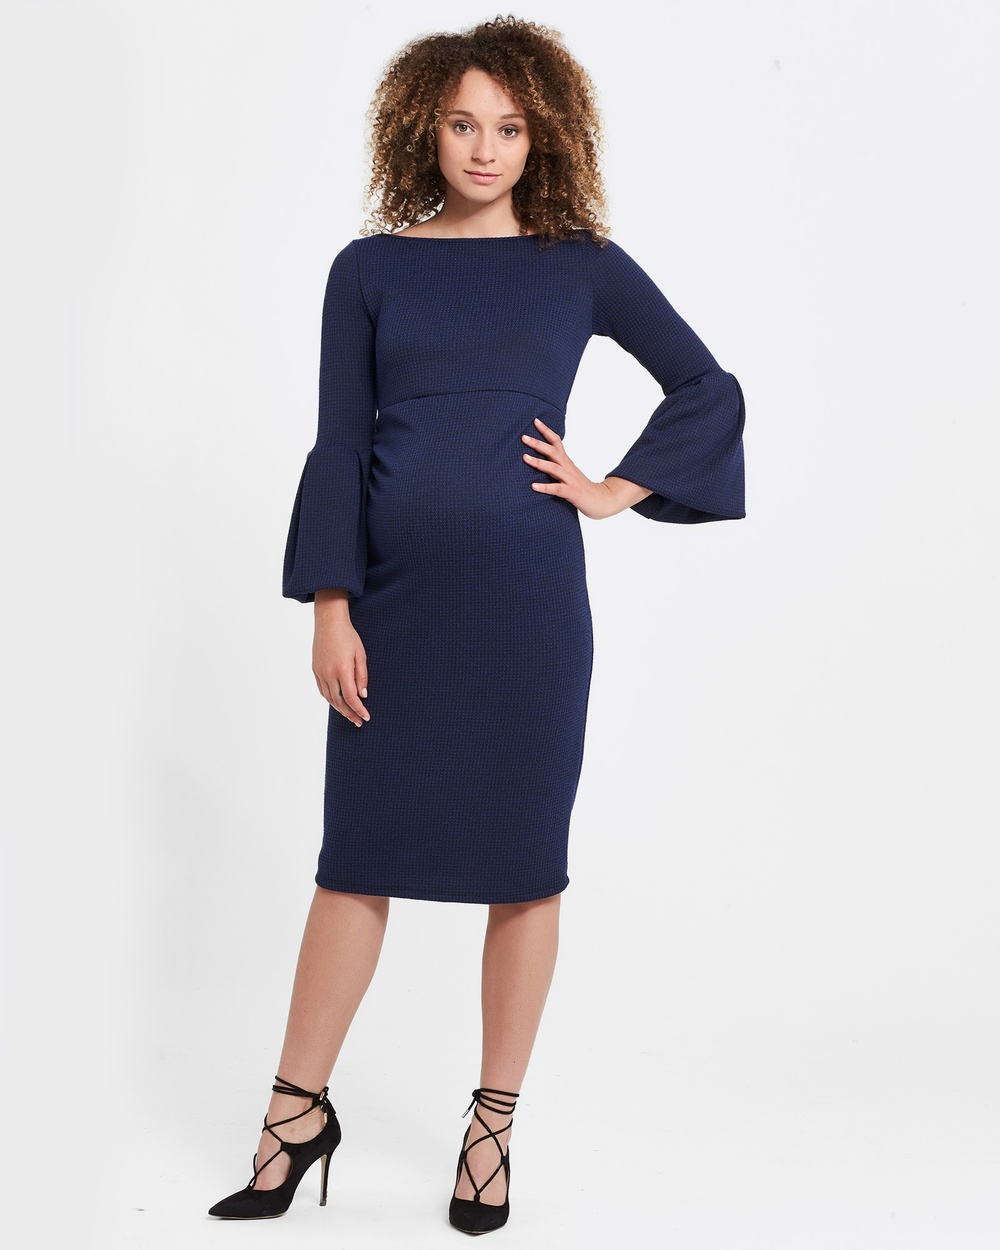 Soon Maternity Myra Ruffle Maternity Dress Dresses Navy Check Myra Ruffle Maternity Dress